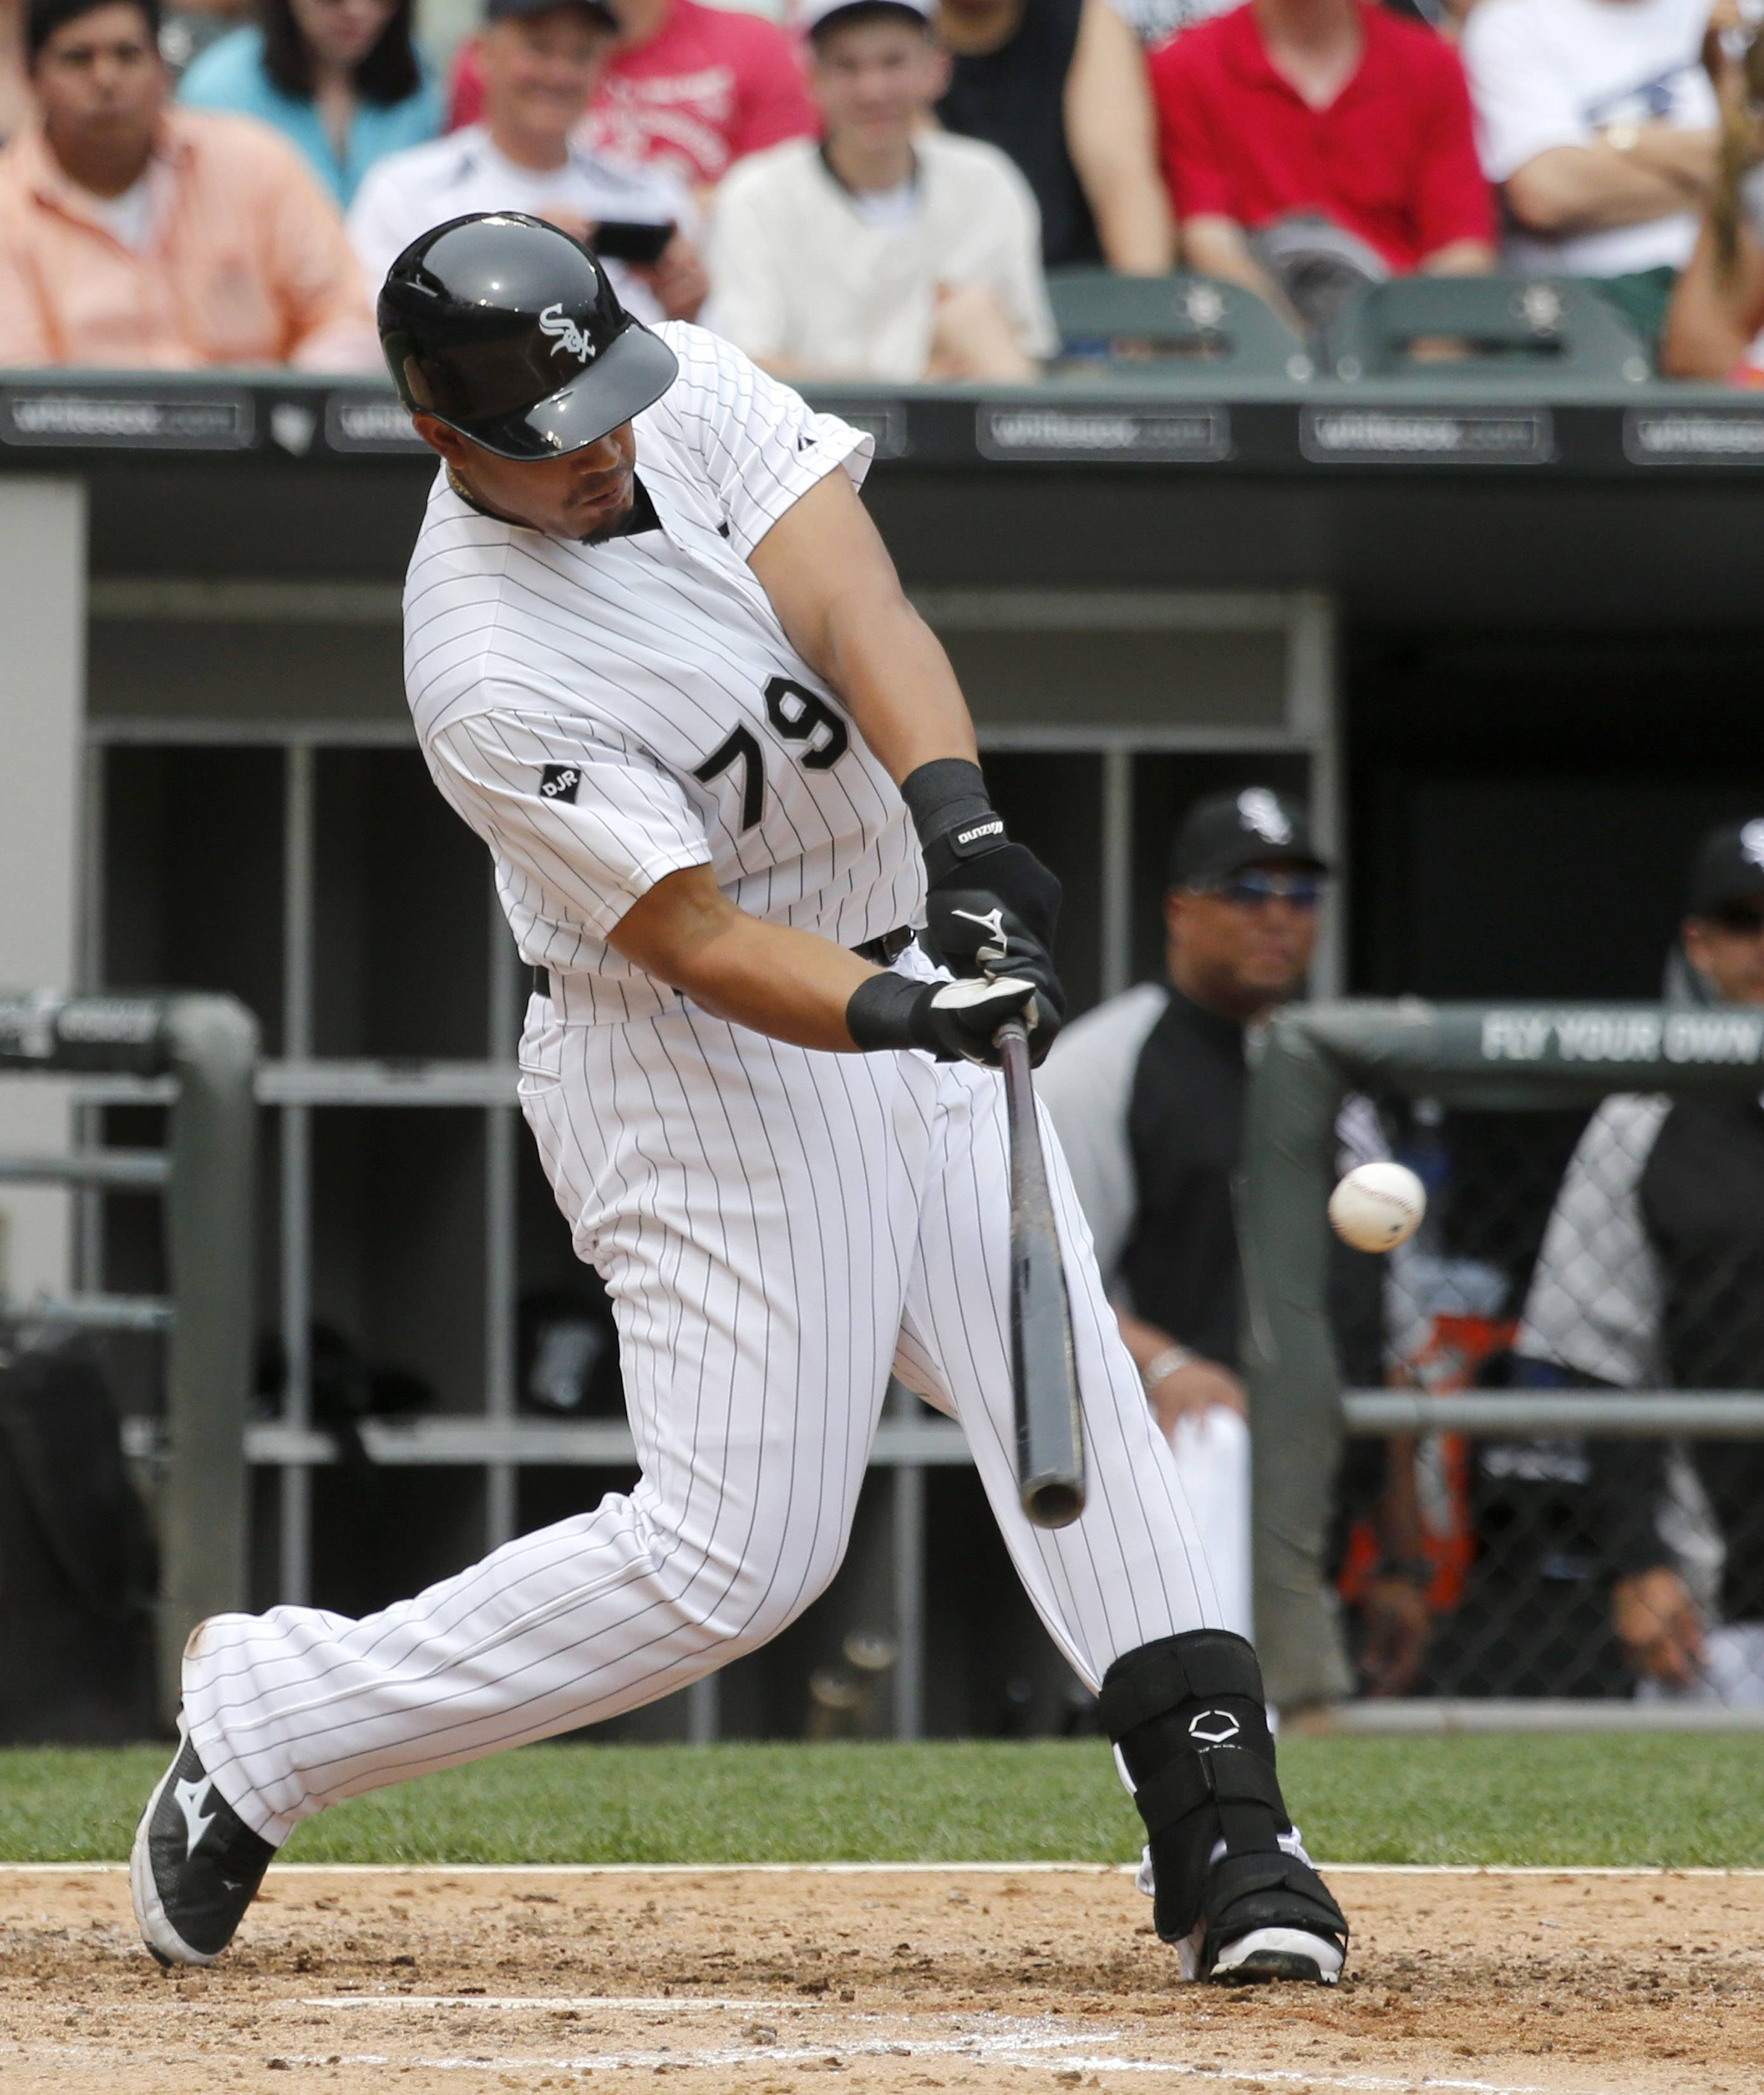 Chicago White Sox's Jose Abreu hits a single off San Francisco Giants starting pitcher Tim Hudson during the fifth inning of an interleague baseball game Wednesday, June 18, 2014, in Chicago. (AP Photo/Charles Rex Arbogast)